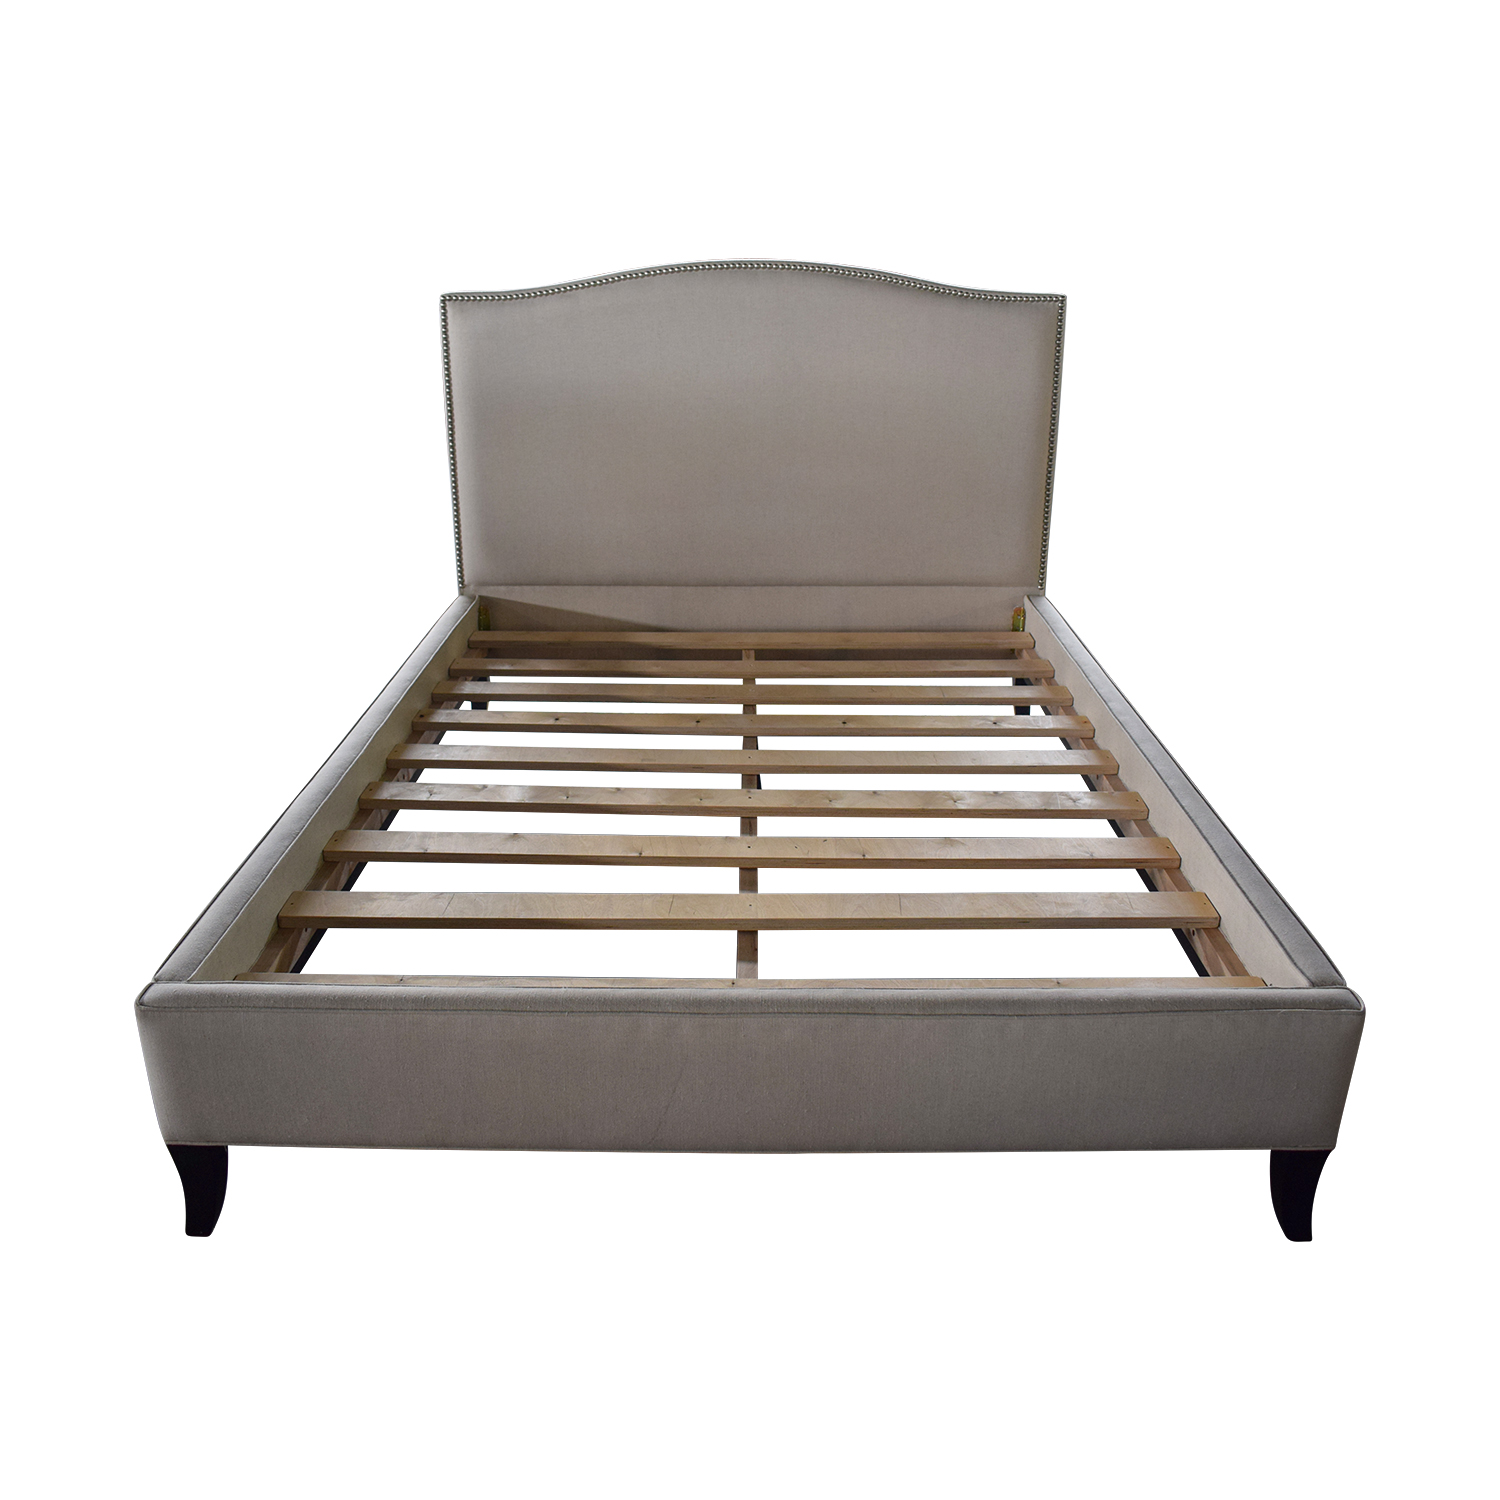 Crate & Barrel Crate & Barrel Colette II Beige Nailhead Queen Bed Frame dimensions